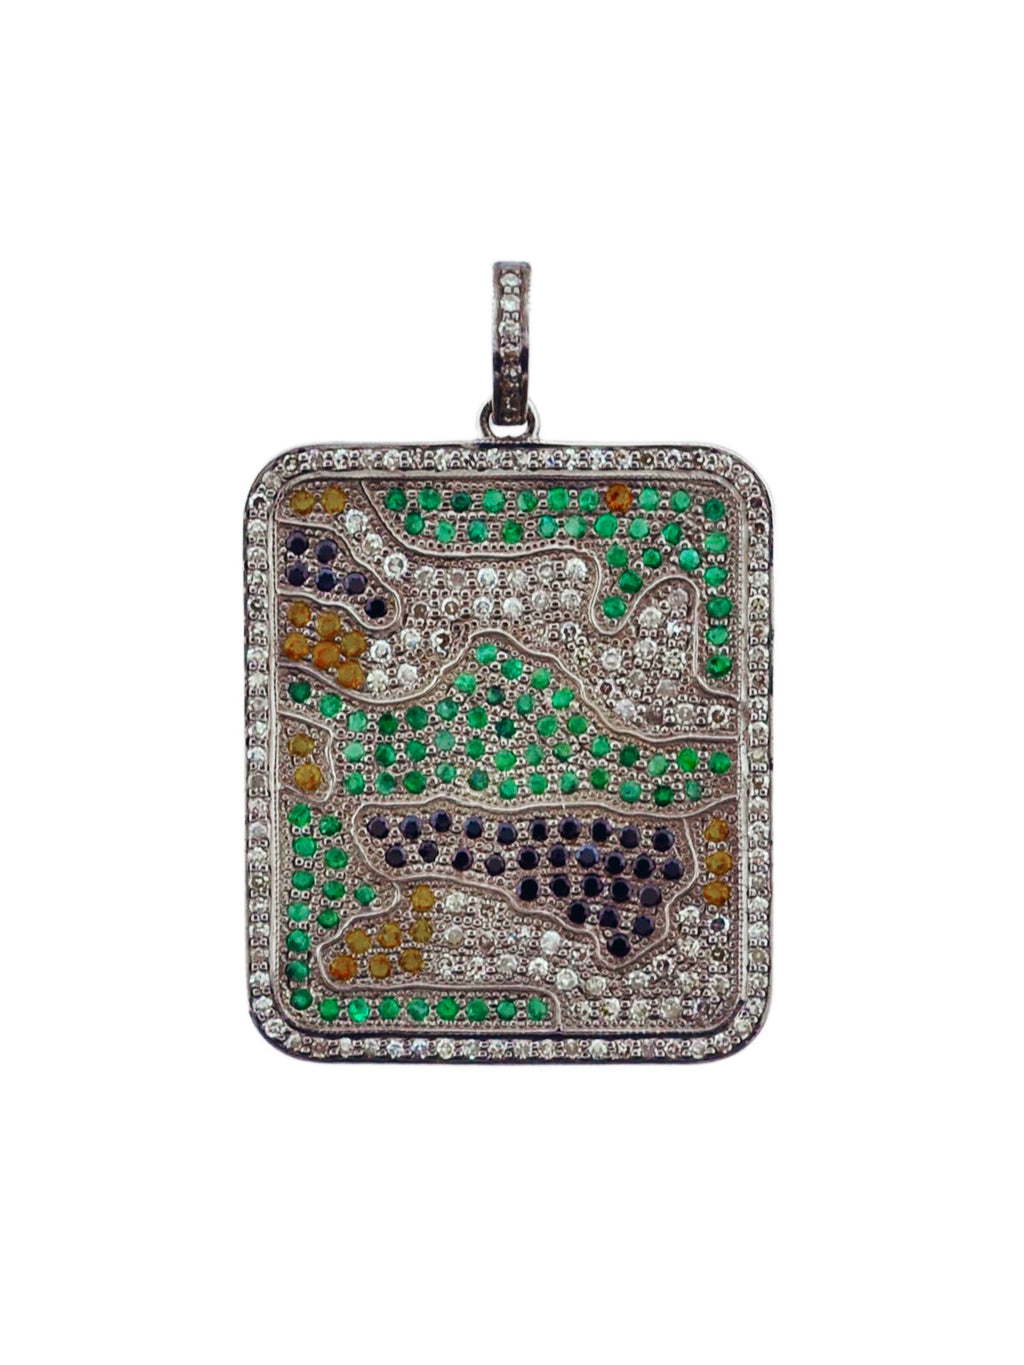 Pave Diamond, Emerald, and Sapphire Camoflauge Dogtag set in Sterling